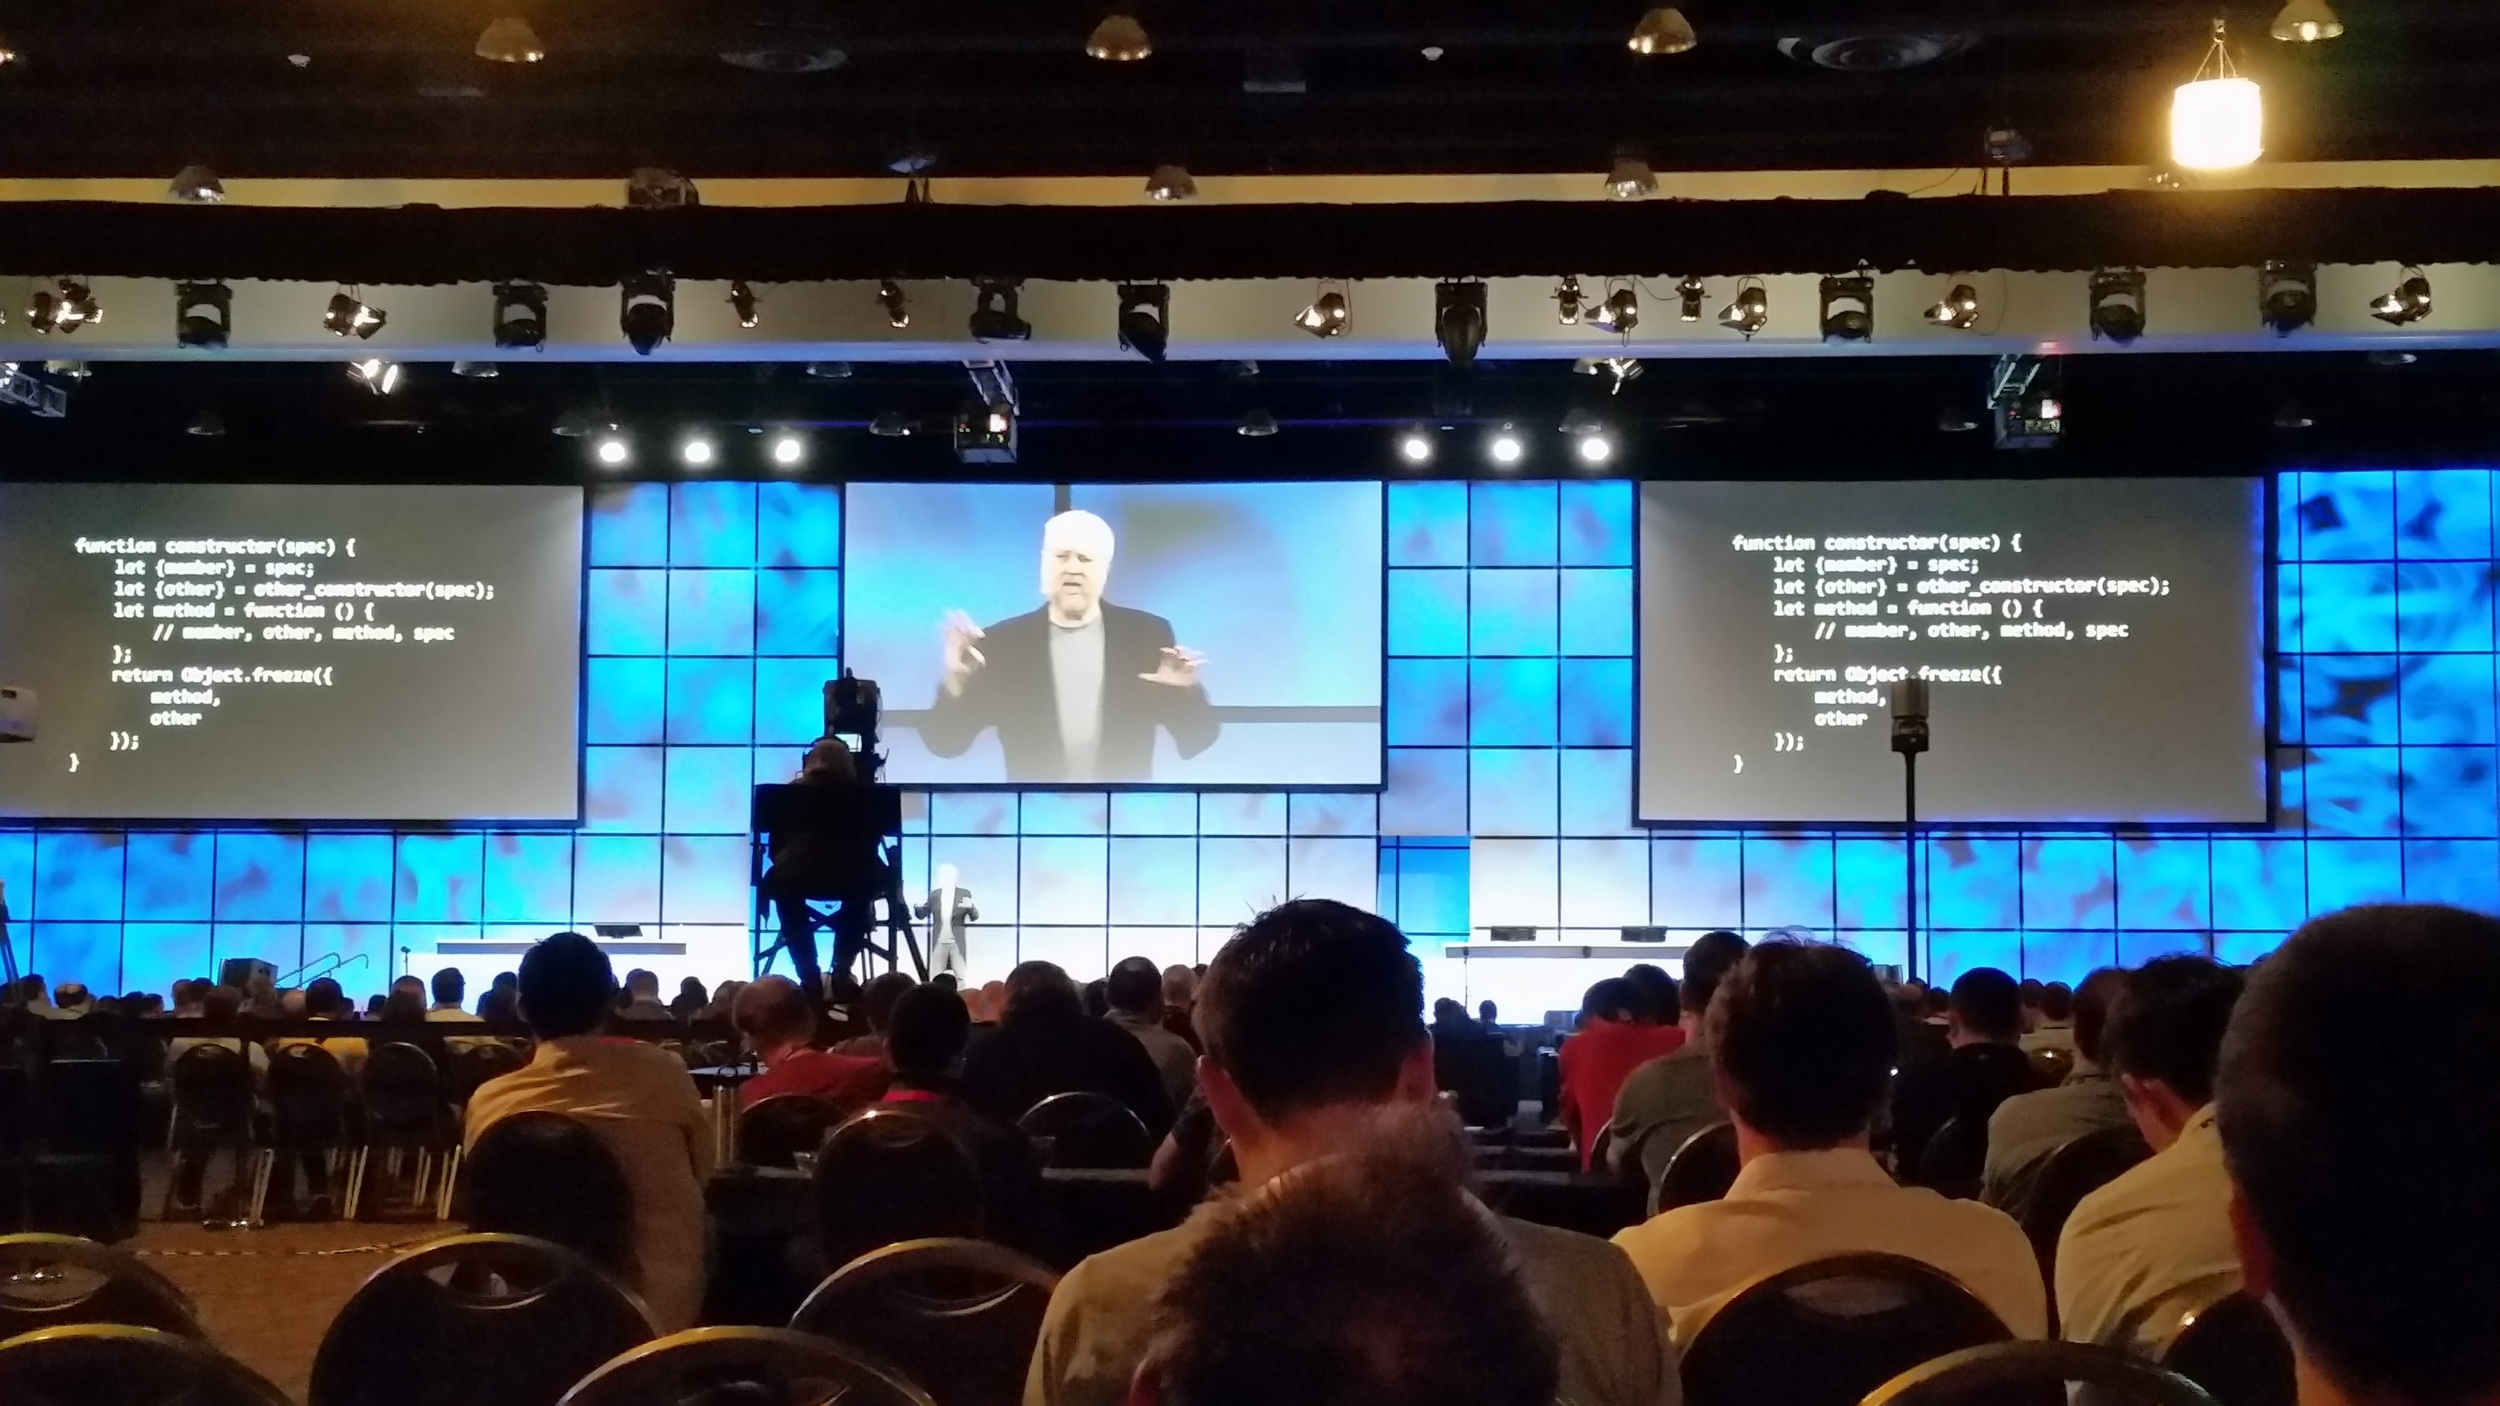 Douglas Crockford presenting at Esri DevSummit